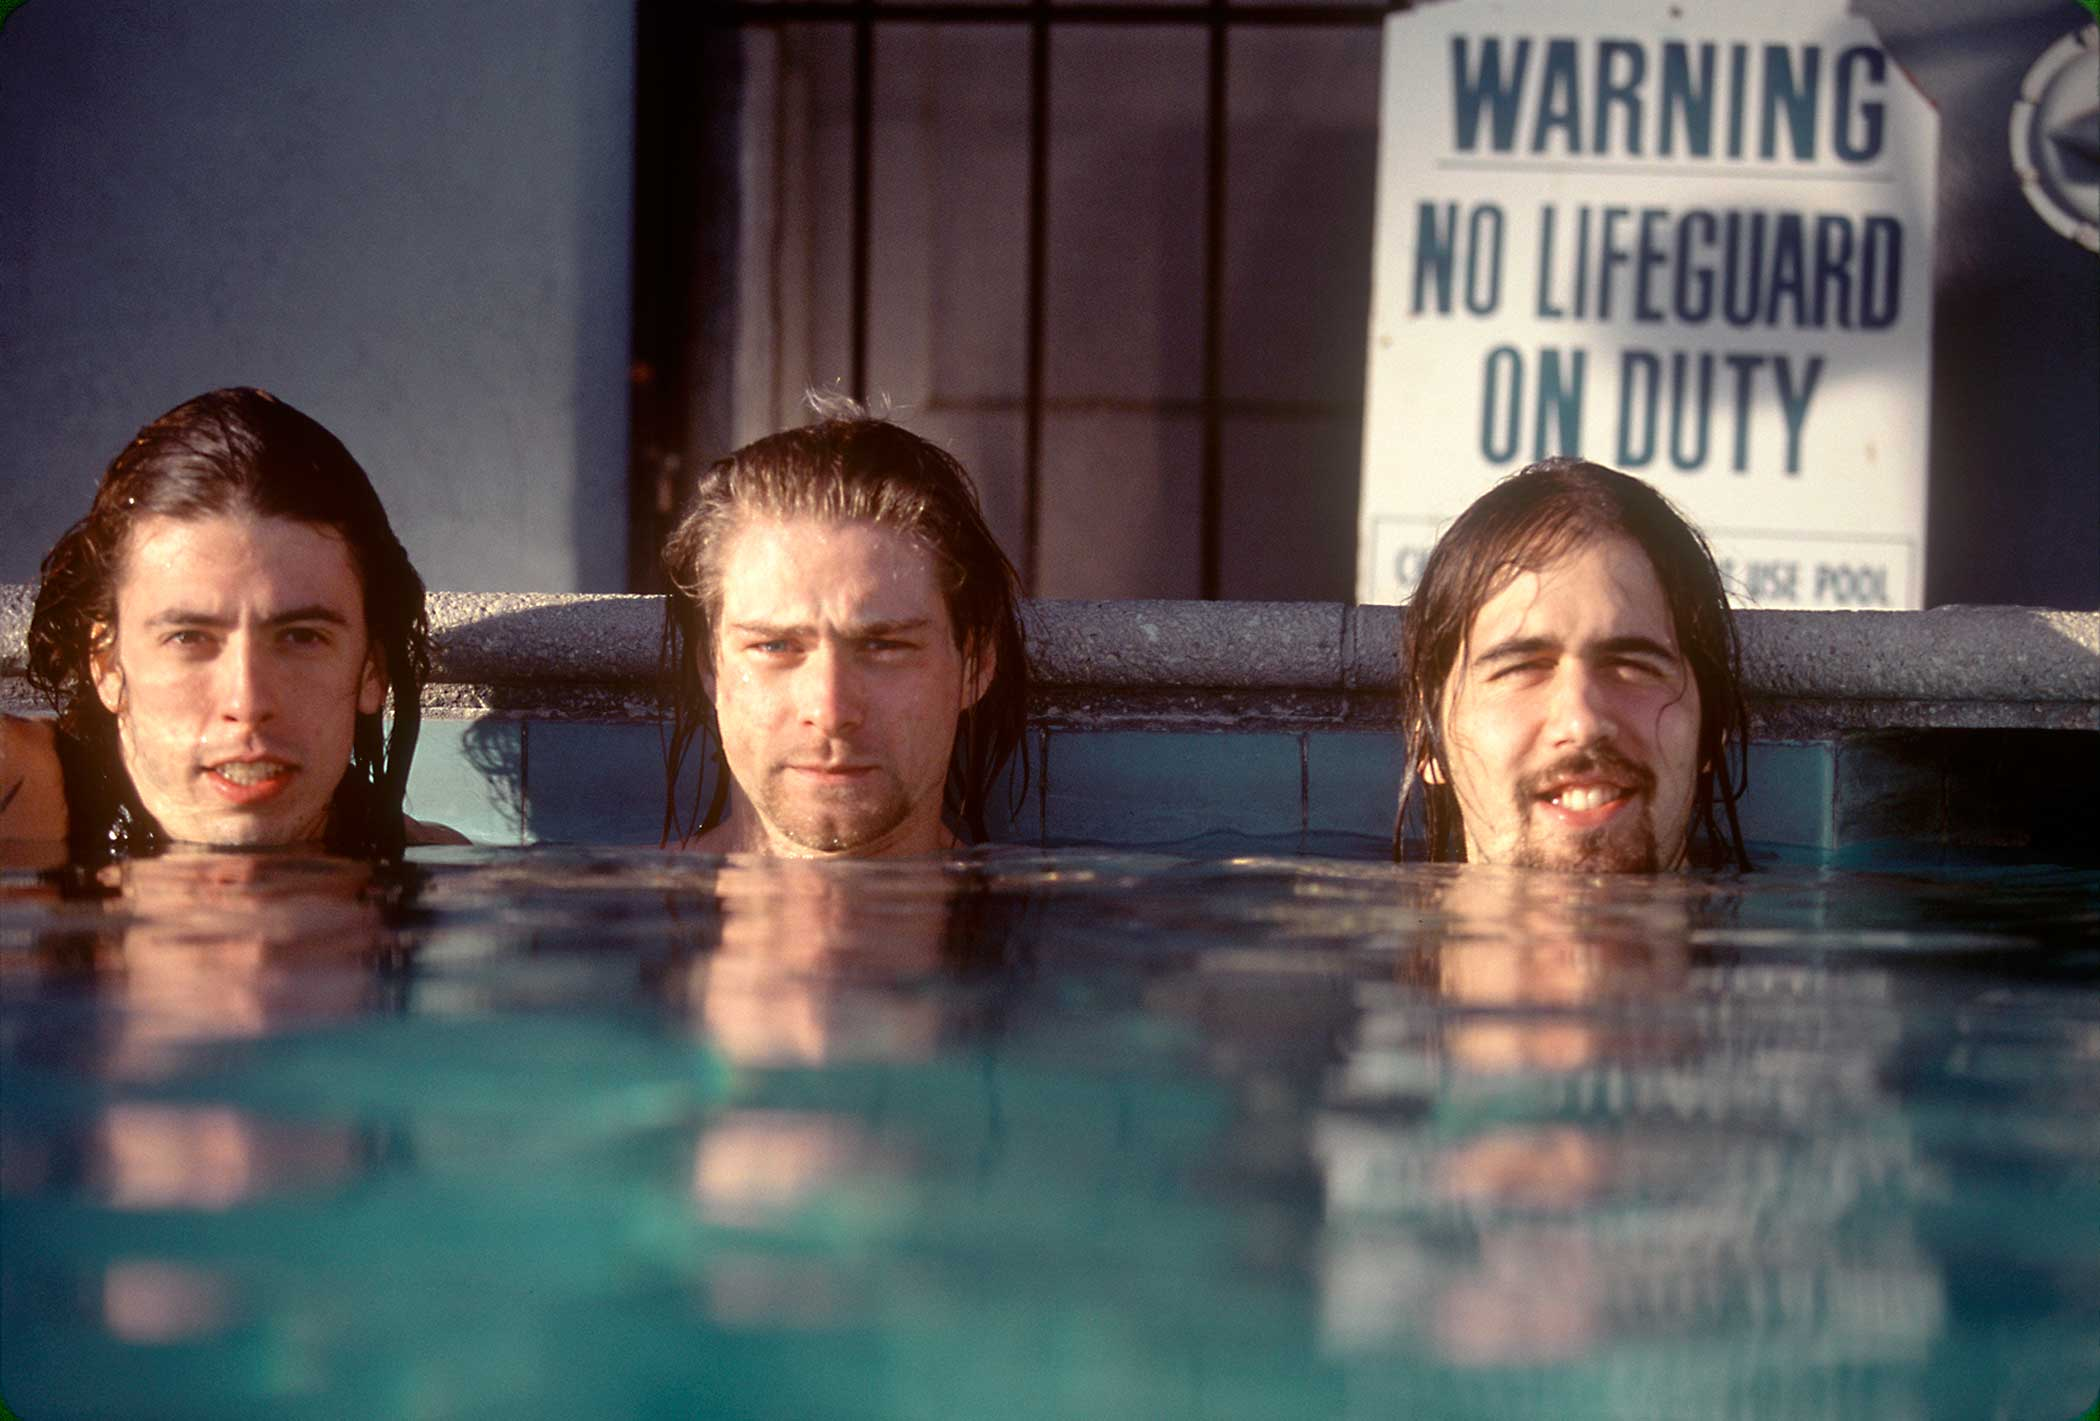 From left: Dave Grohl, Kurt Cobain and Krist Novoselic in Los Angeles in 1991.